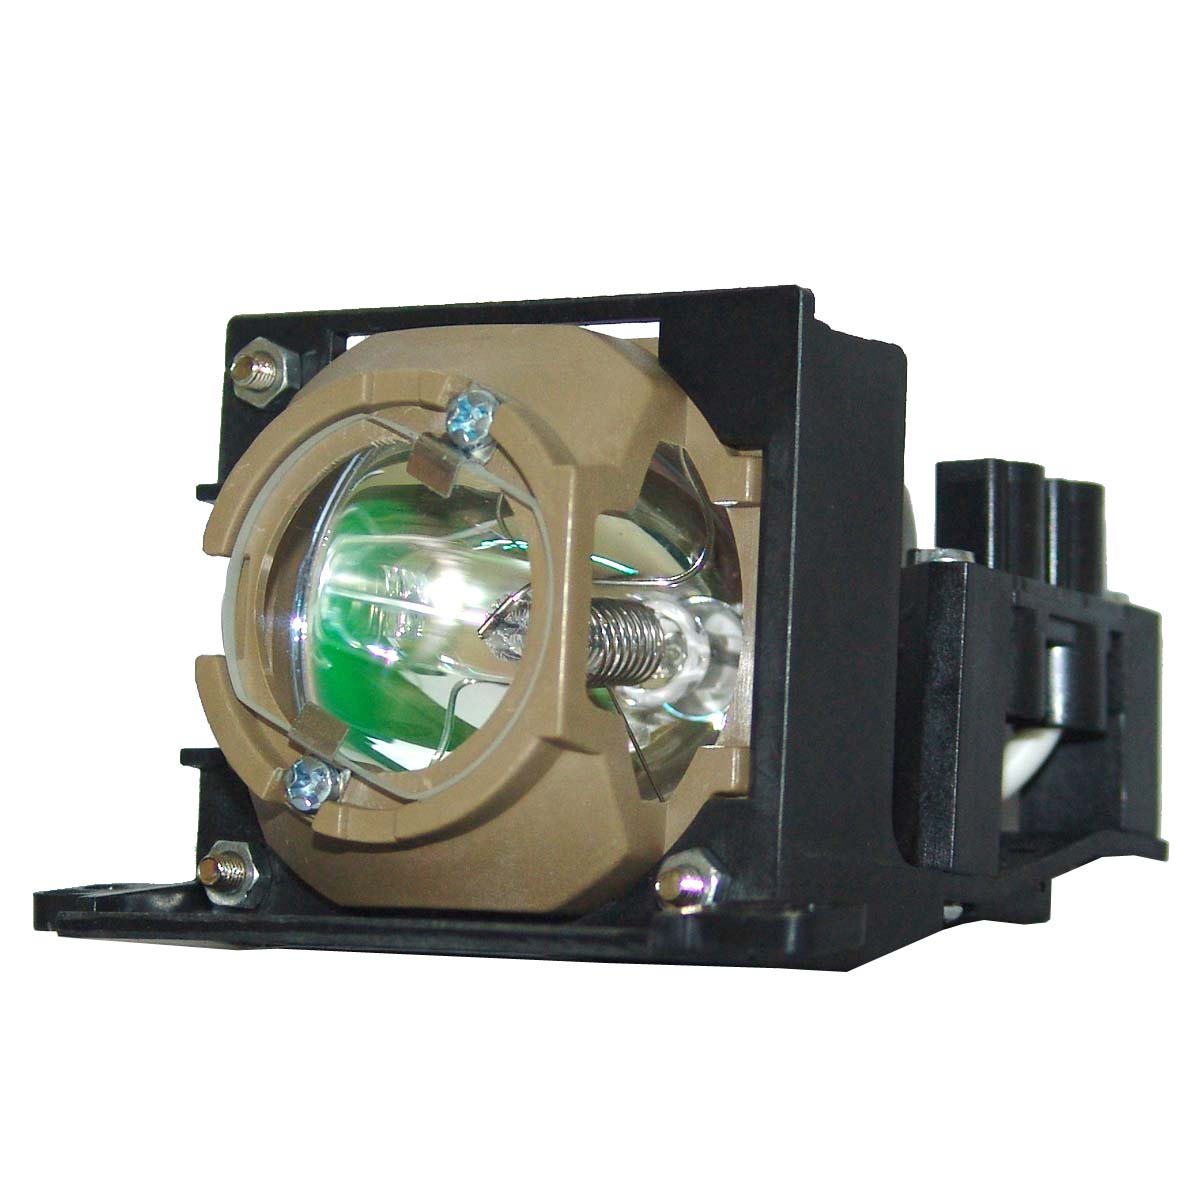 Lamp Housing For 3M 786969-9294-6 / 78696992946 Projector DLP LCD Bulb